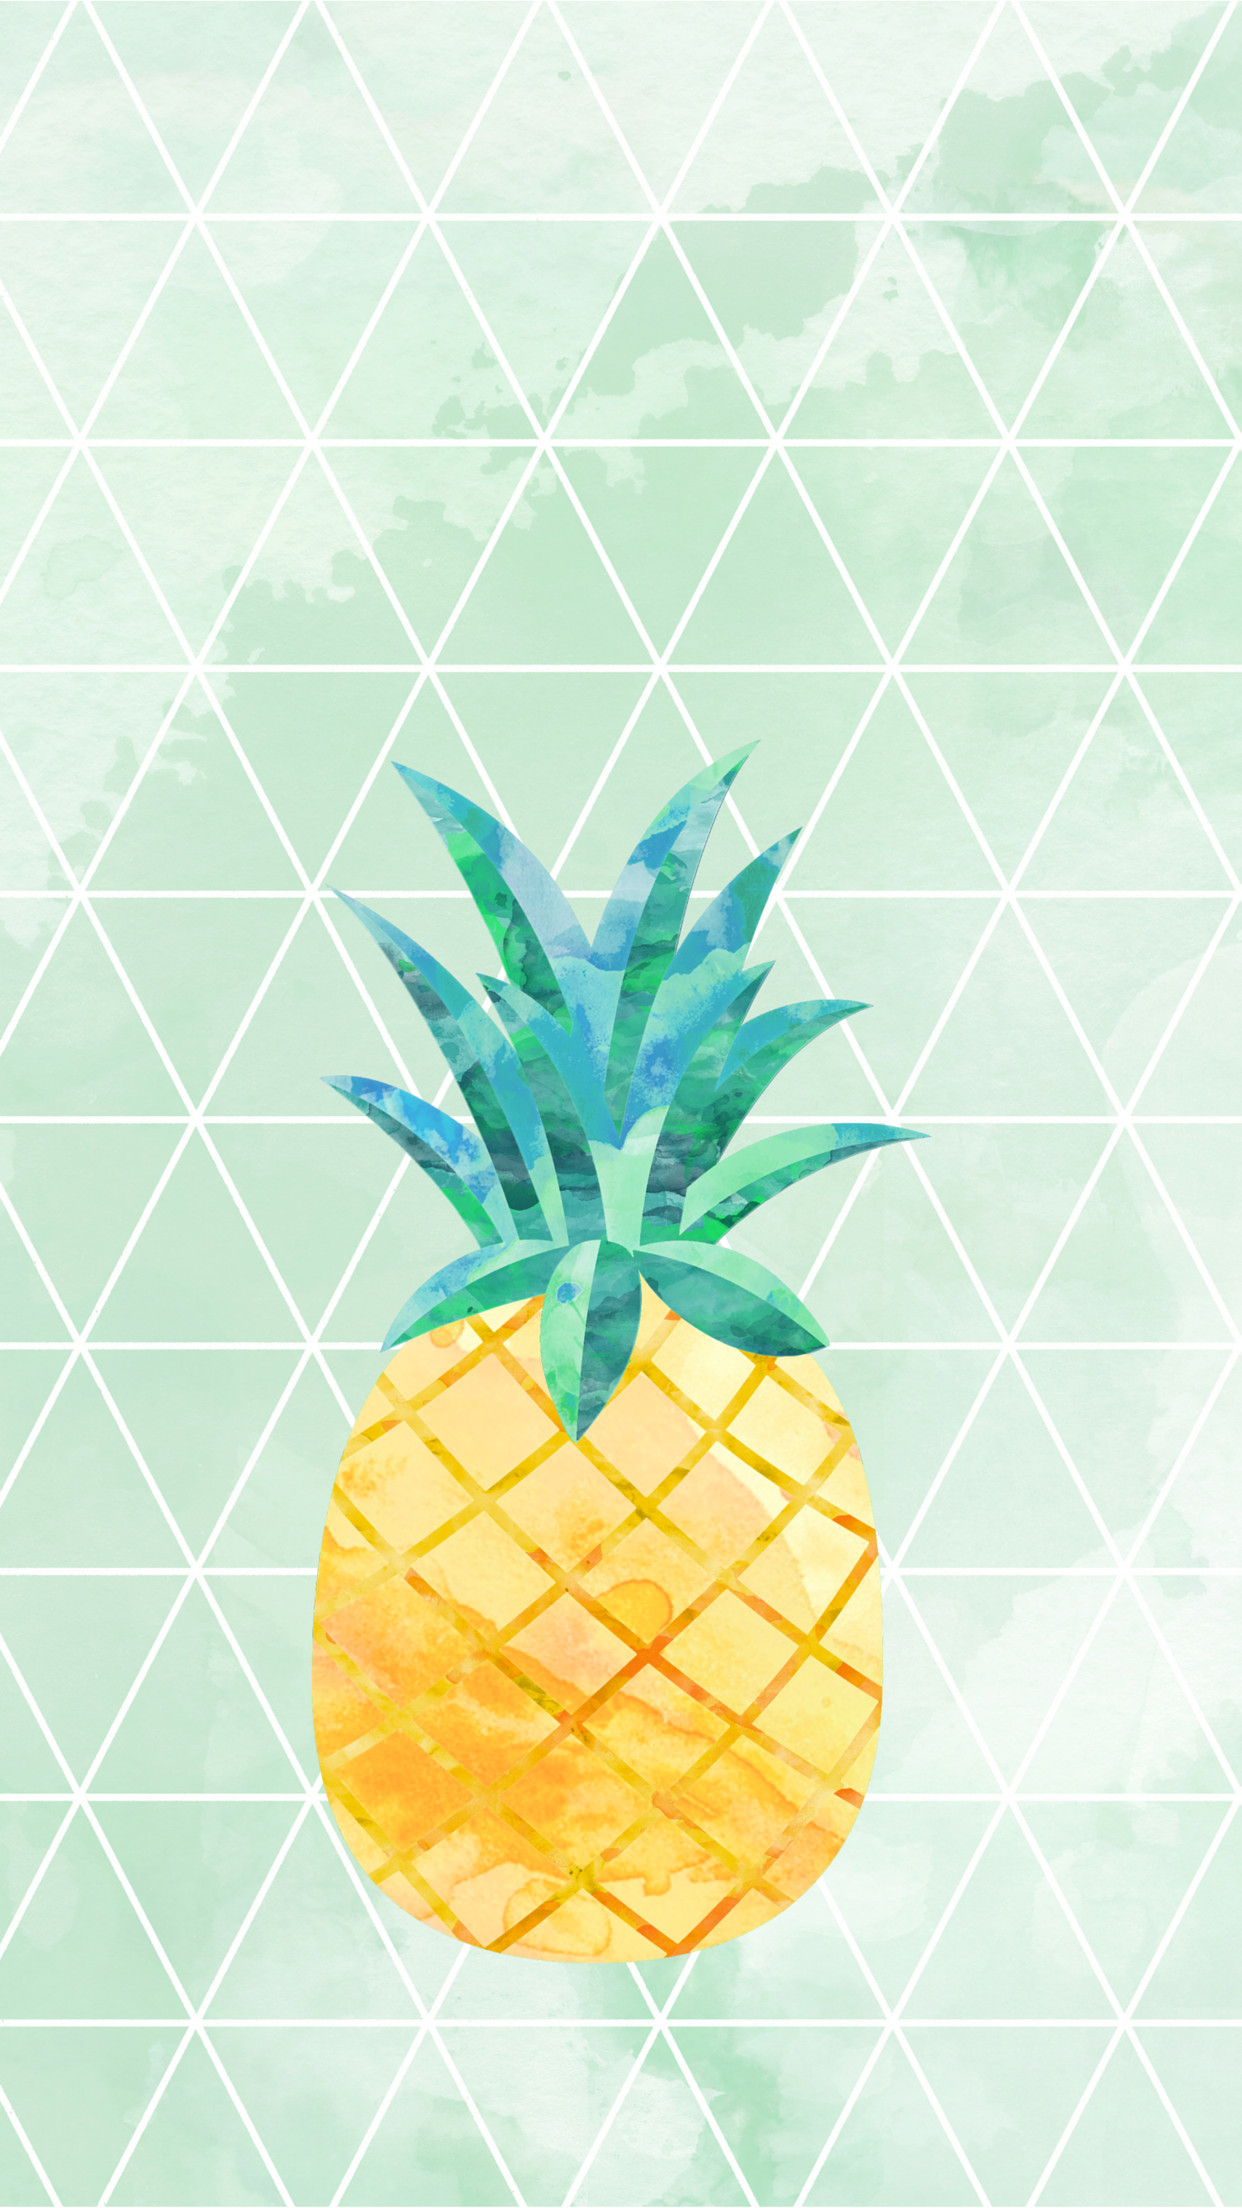 Mixbook-inspired-free-iPhone-wallpaper-for-summer